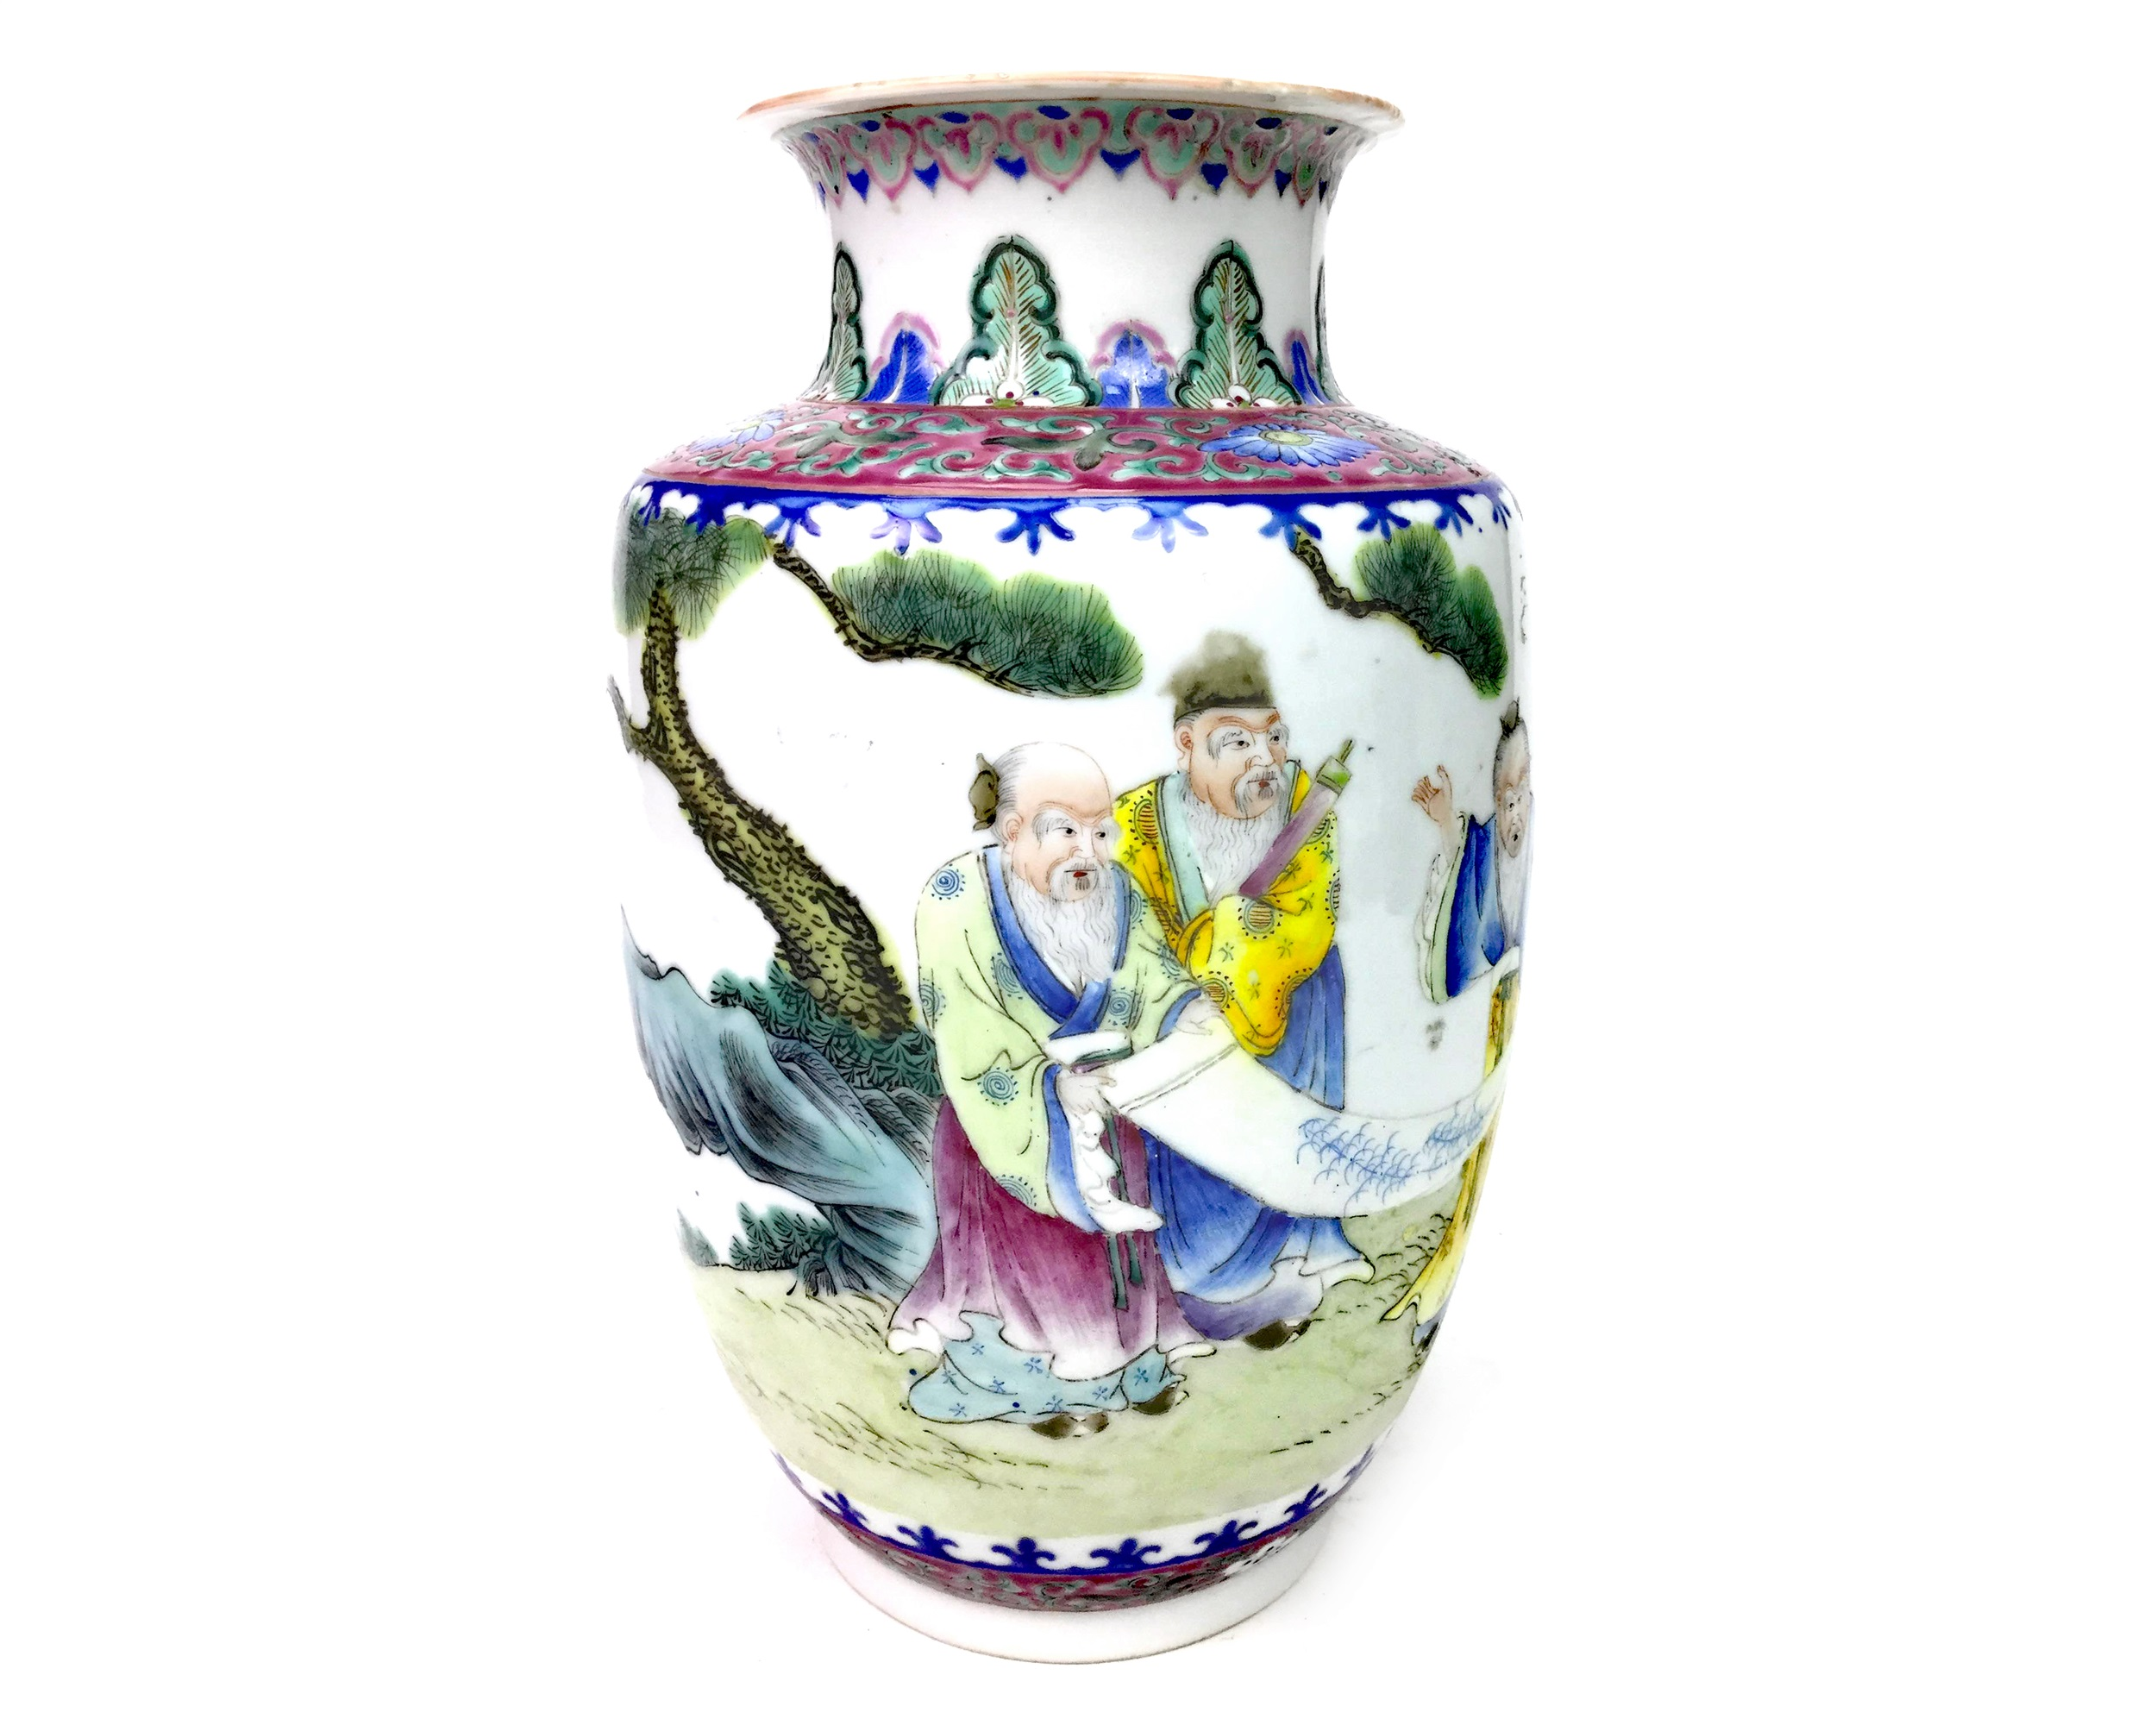 Lot 1138 - AN EARLY 20TH CENTURY CHINESE VASE